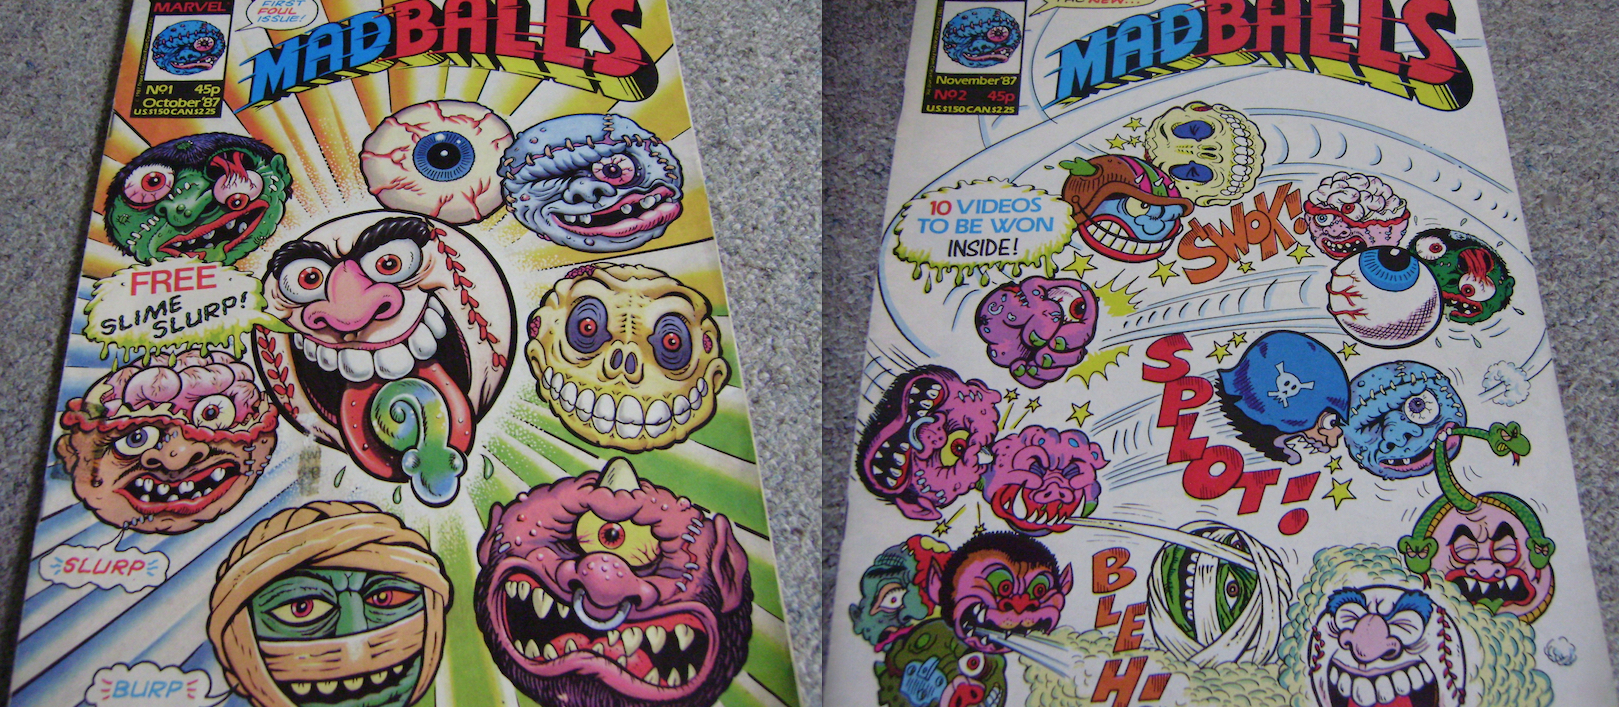 Madballs UK Comics Issues 1 & 2